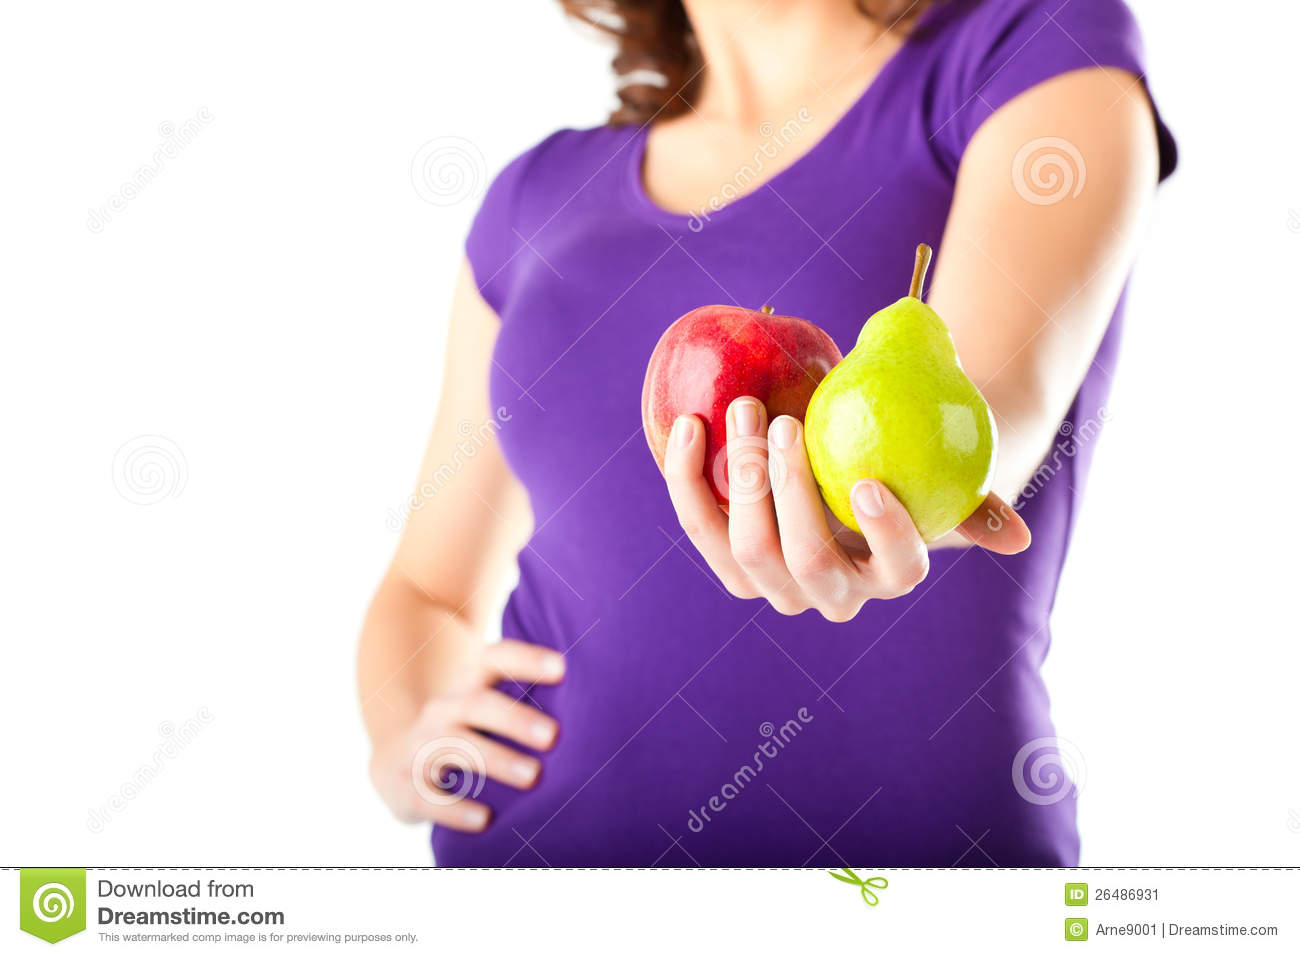 Download Healthy Diet - Woman With Apple And Pear Stock Image - Image of girl, apple: 26486931